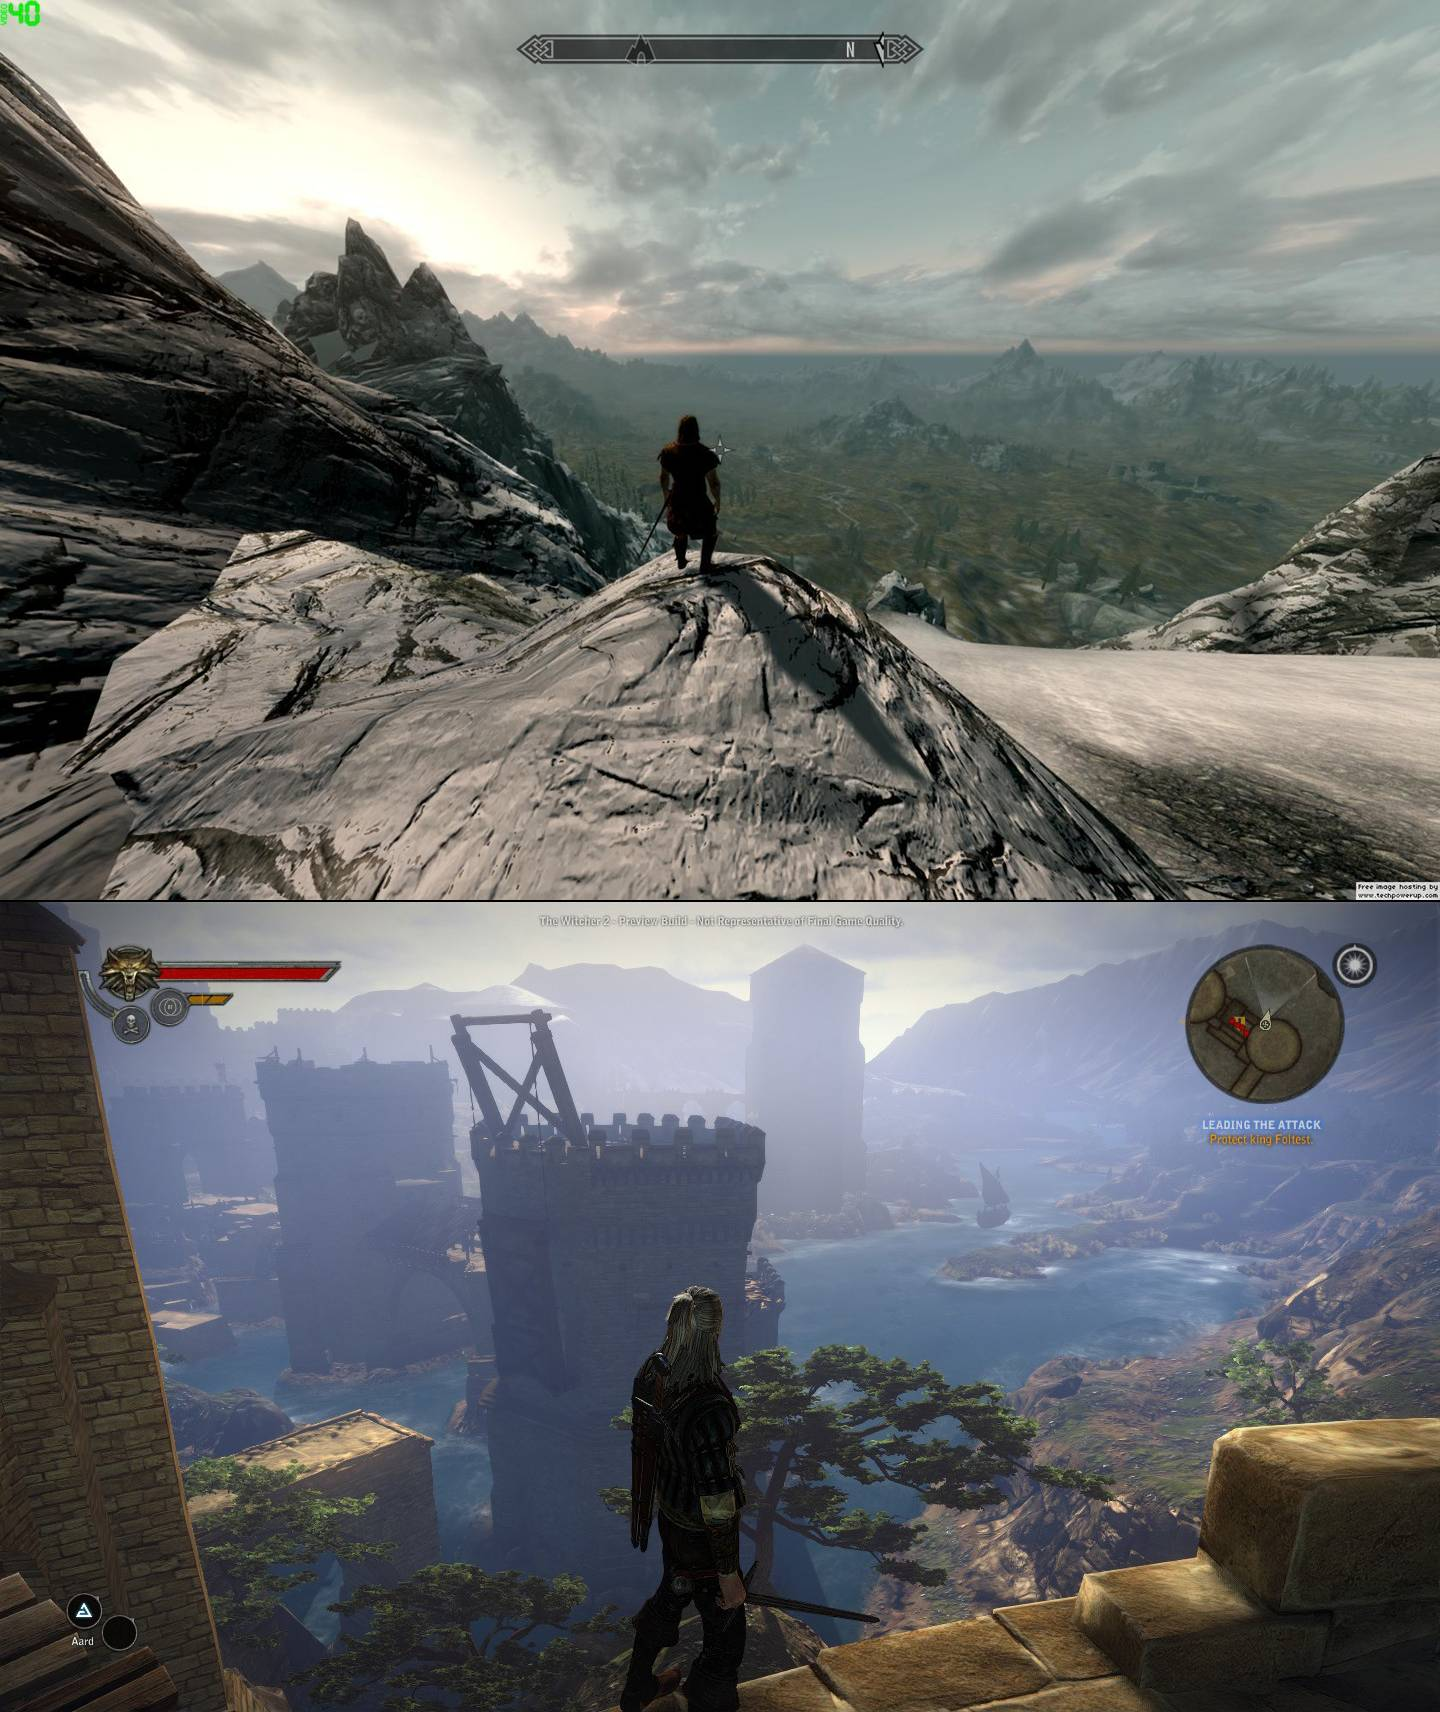 a comparison between skyrim and morrowind two video games by bethesda Let's take a look at the differences between skyrim skyrim special edition versus pc mods – graphics comparison pc games skyrim special edition versus.